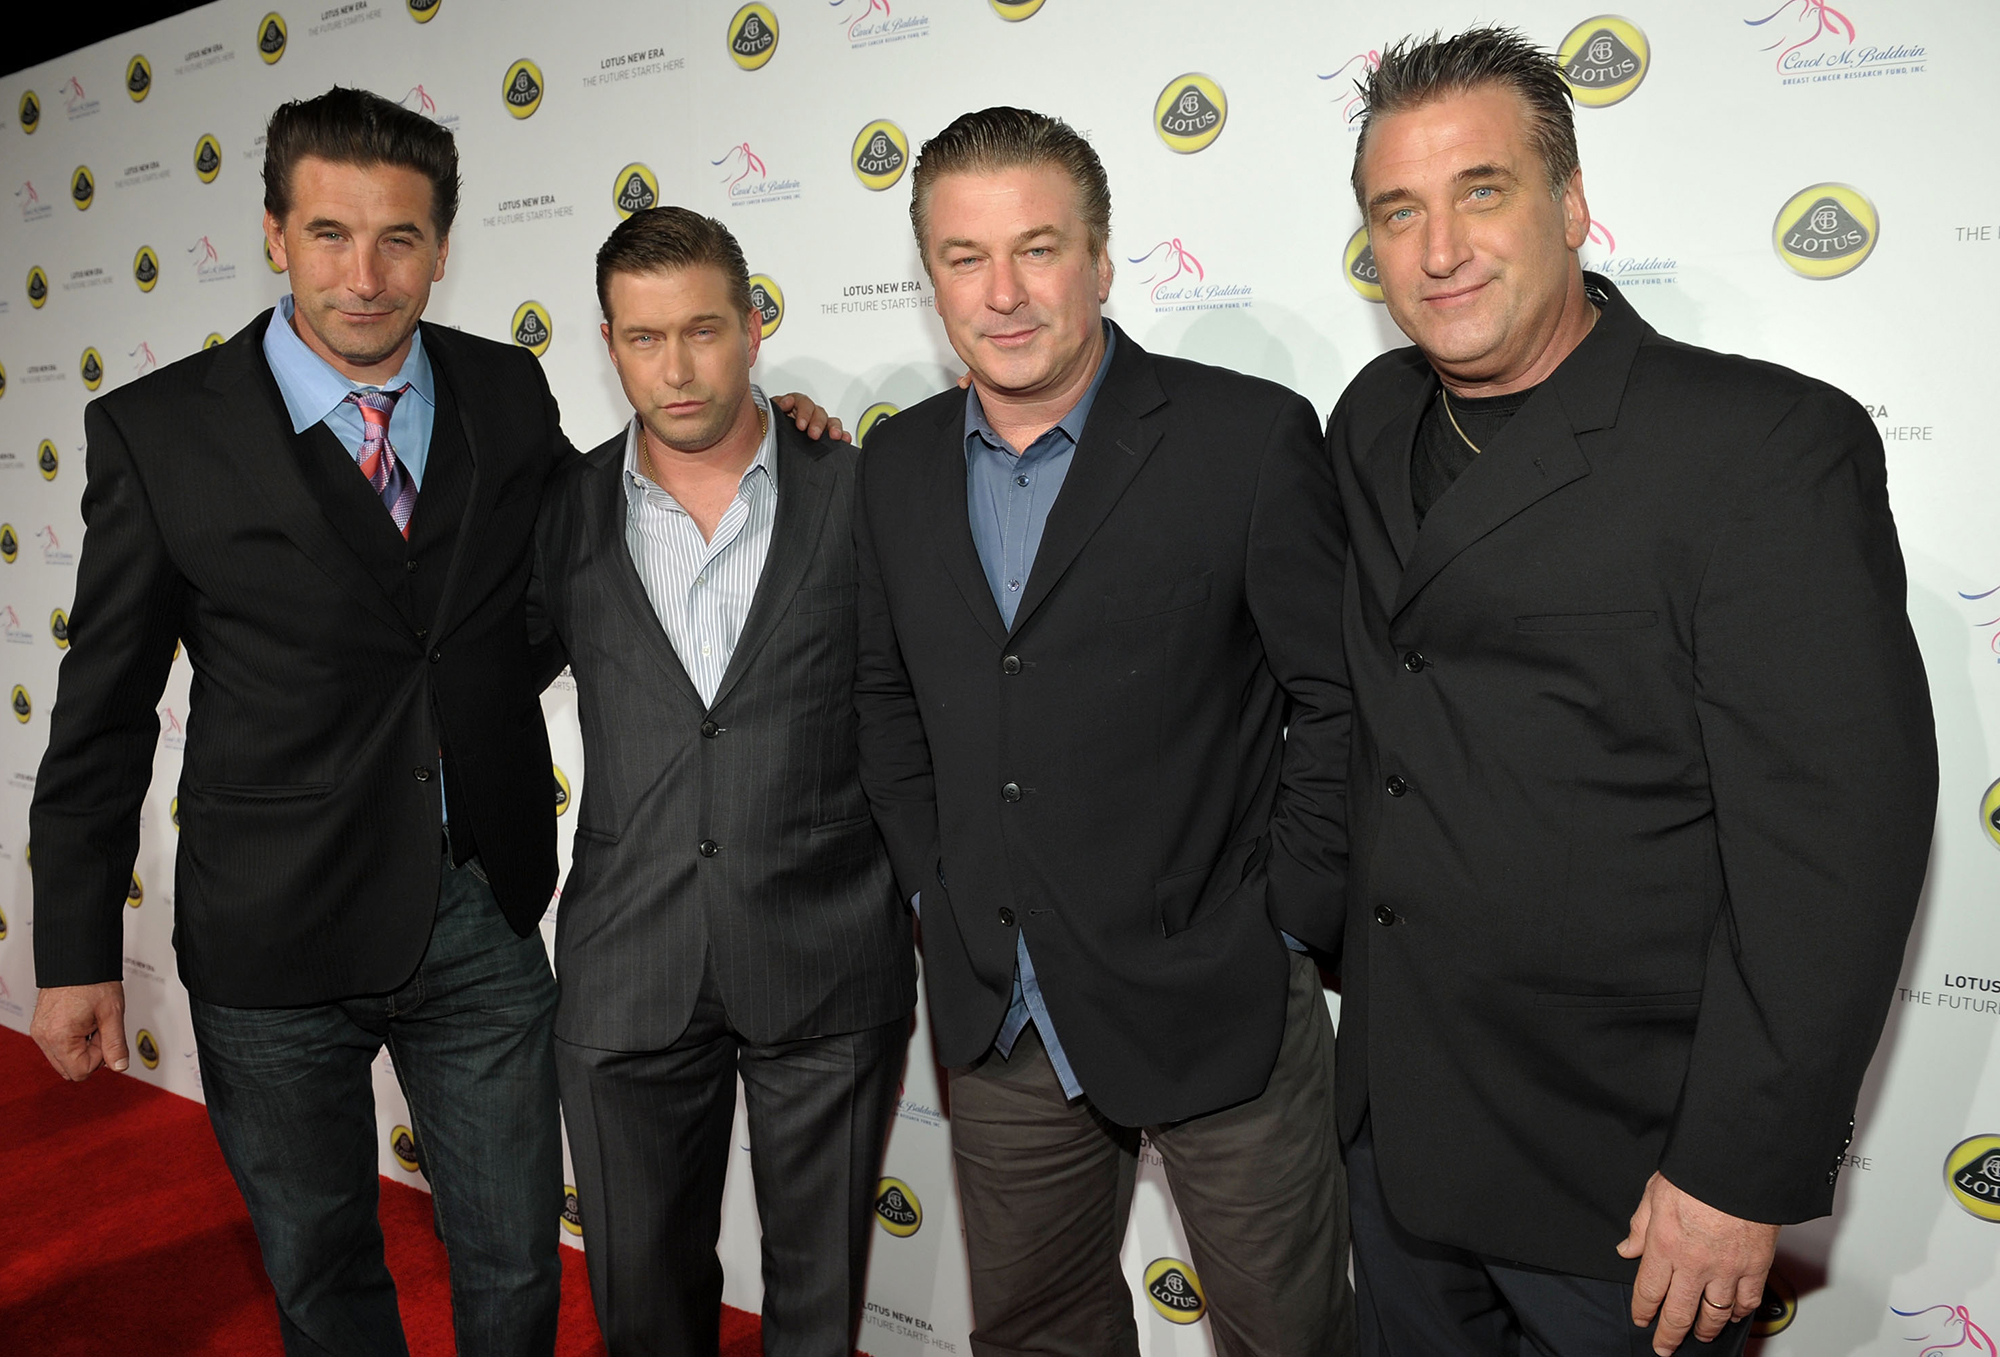 Celebrity Siblings - All four of the Baldwin brothers are involved in the film industry. Eldest son Alec is the most well-known, with roles in Beetlejuice , The Aviator , The Departed and Saturday Night Live , to name a few, but all are recognizable: Daniel has starred in countless roles, including Mullholland Falls and The Neighborhood , while Stephen is known for his stints on reality TV, including Celebrity Apprentice and Celebrity Big Brother .